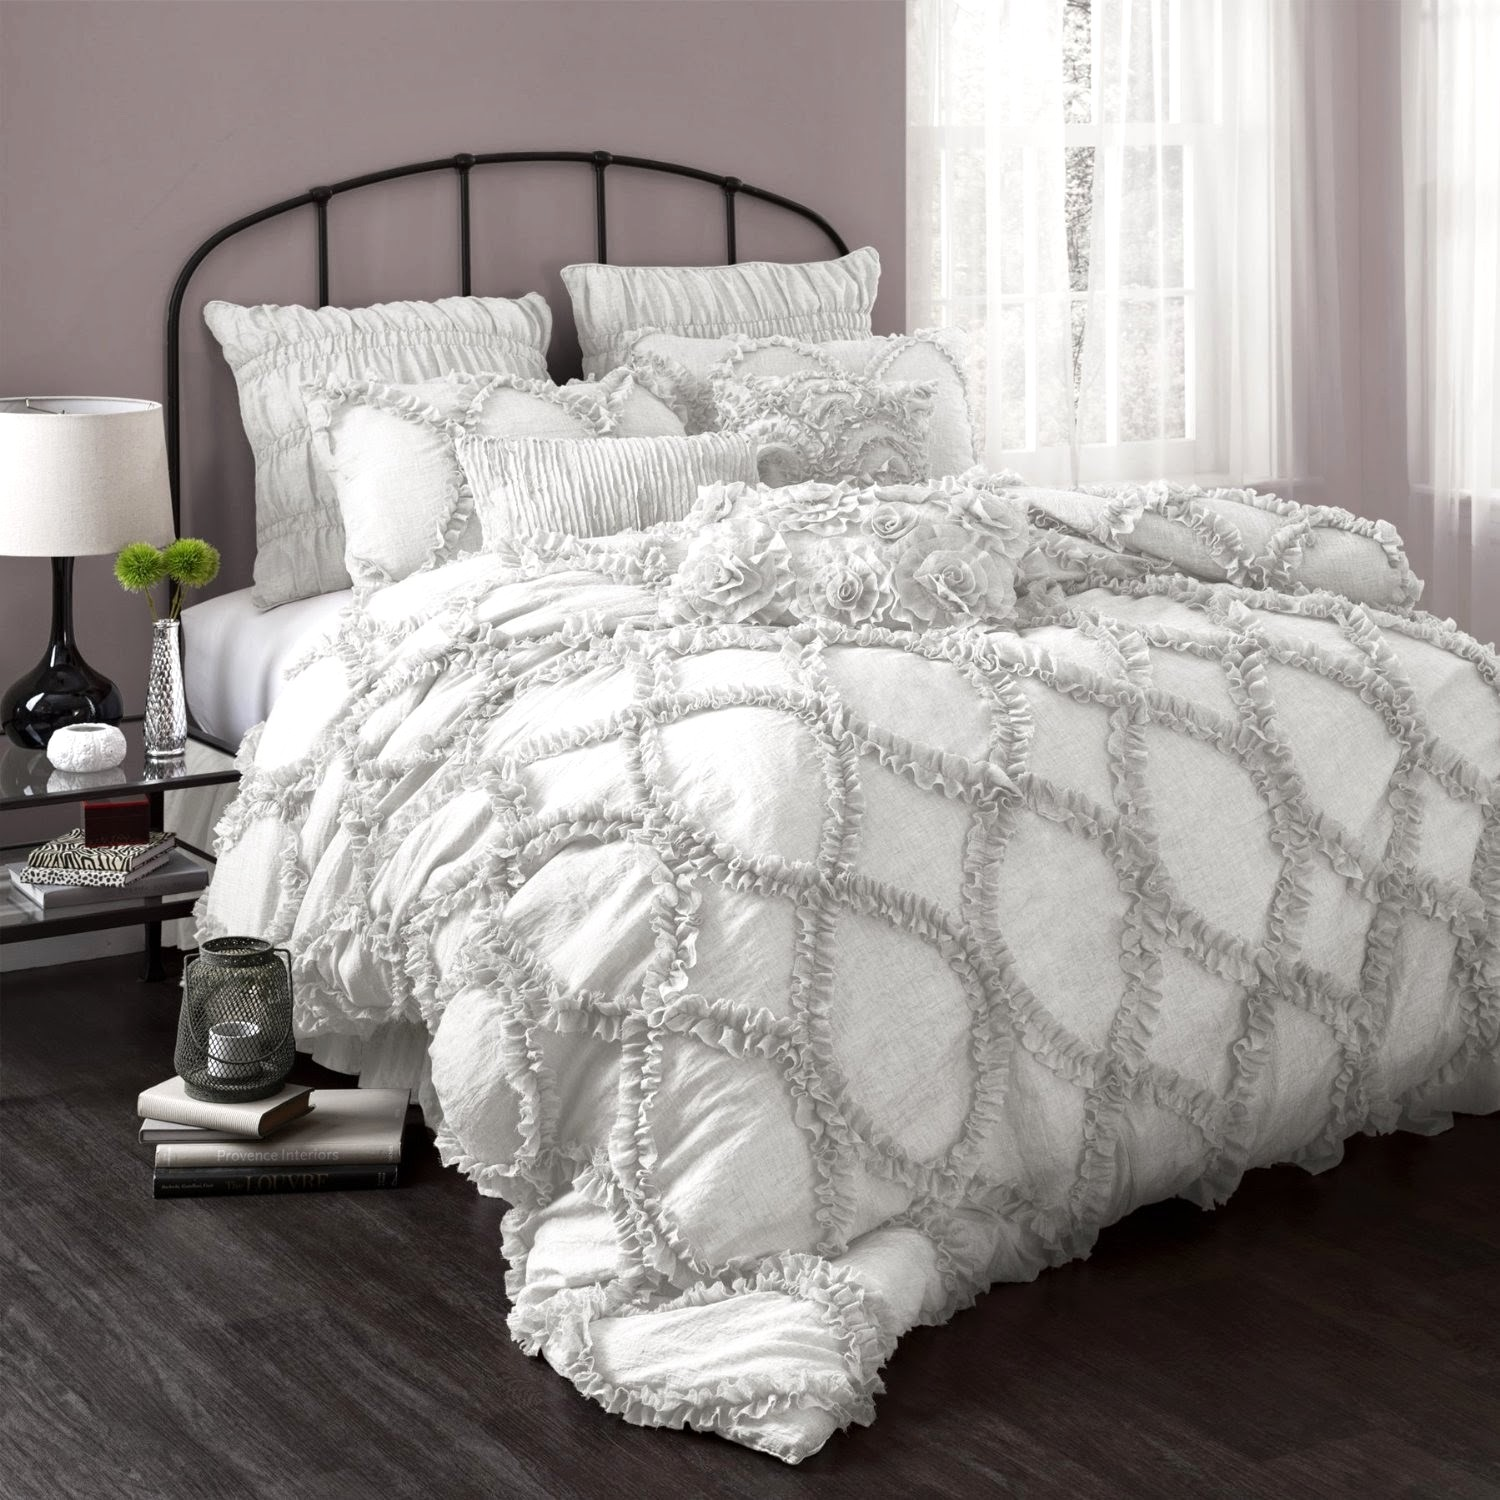 Image of: Good Chic Bedding Sets